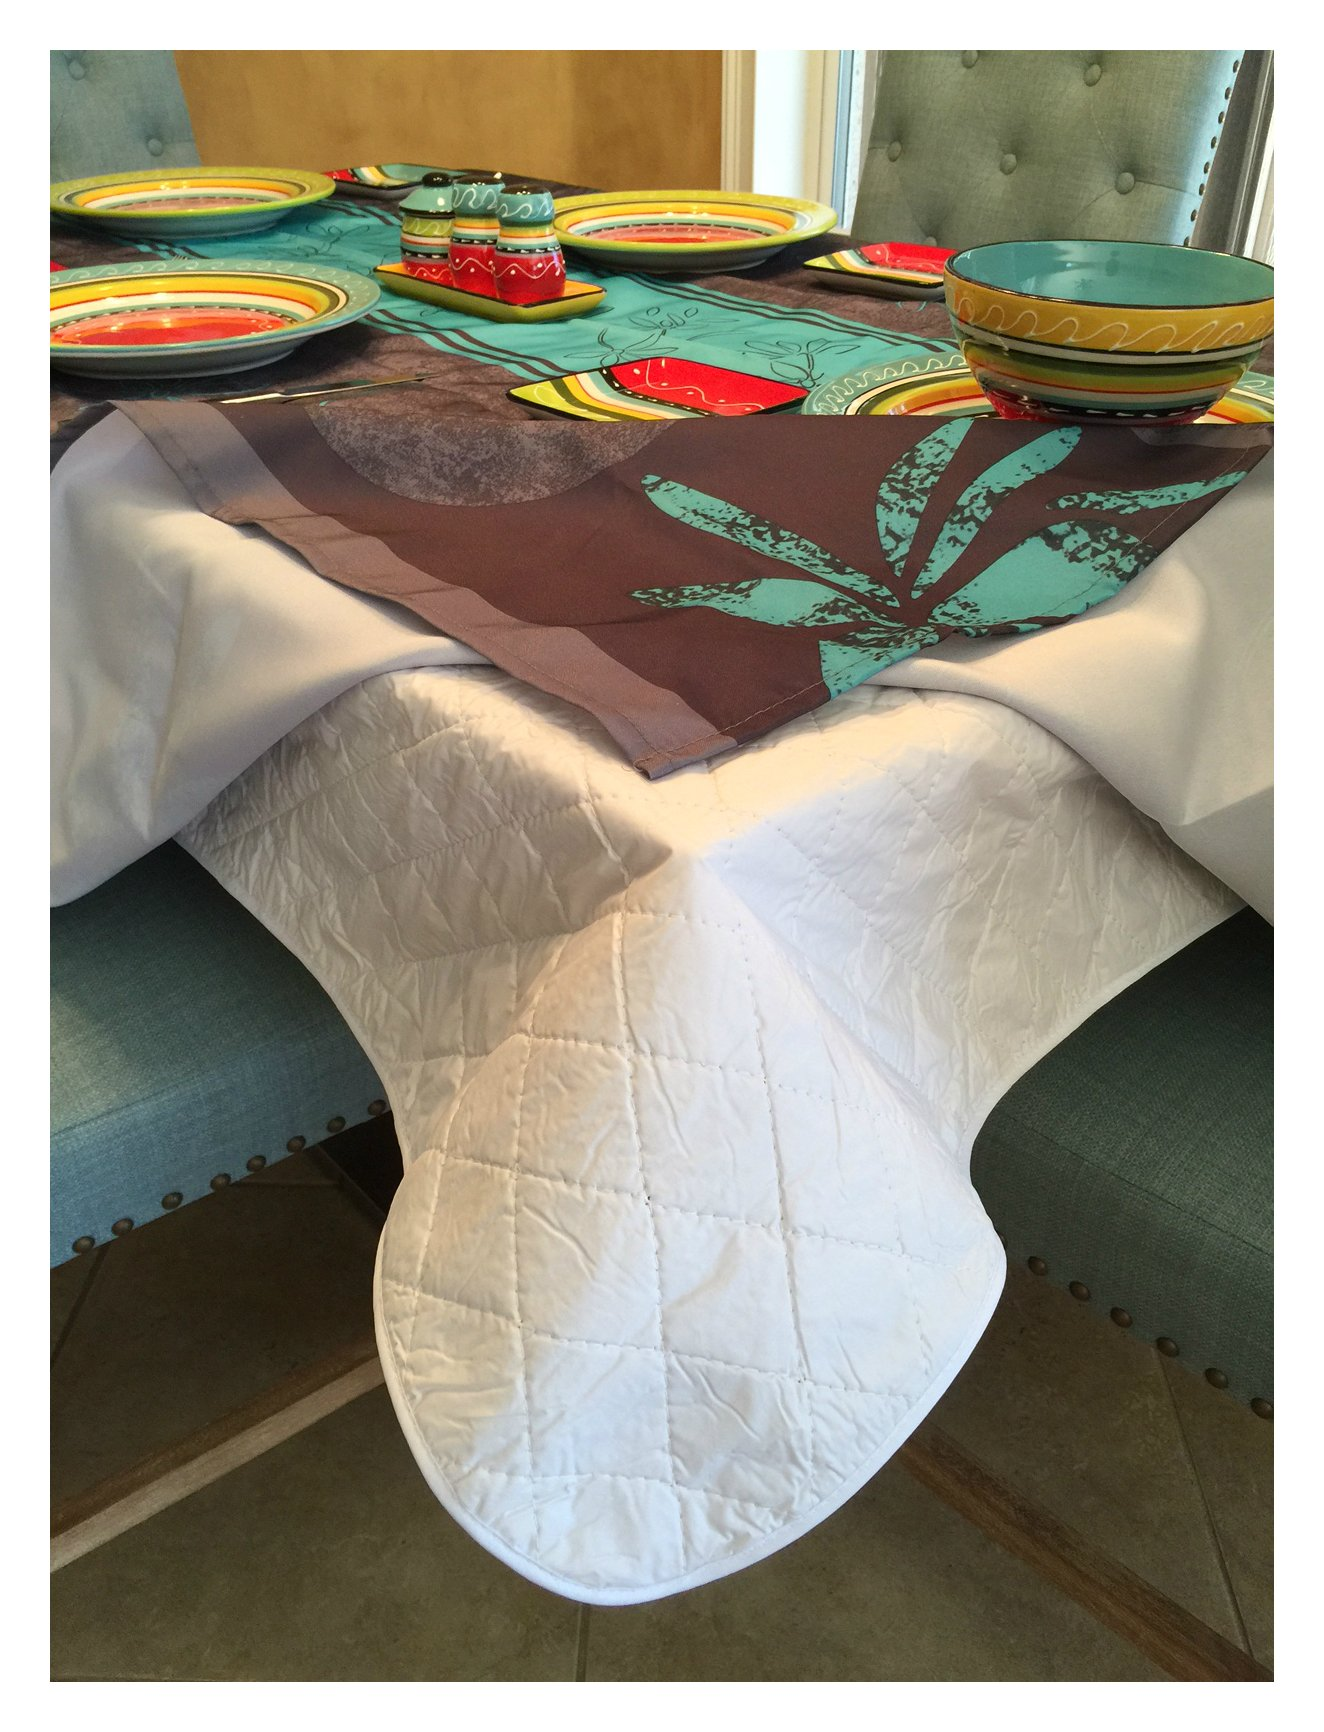 Brilliant Home Design First Quality Quilted Table Protectors - Quilted Dining Table Pad With Flannel Backed For More Protection (60 in x 102 in)